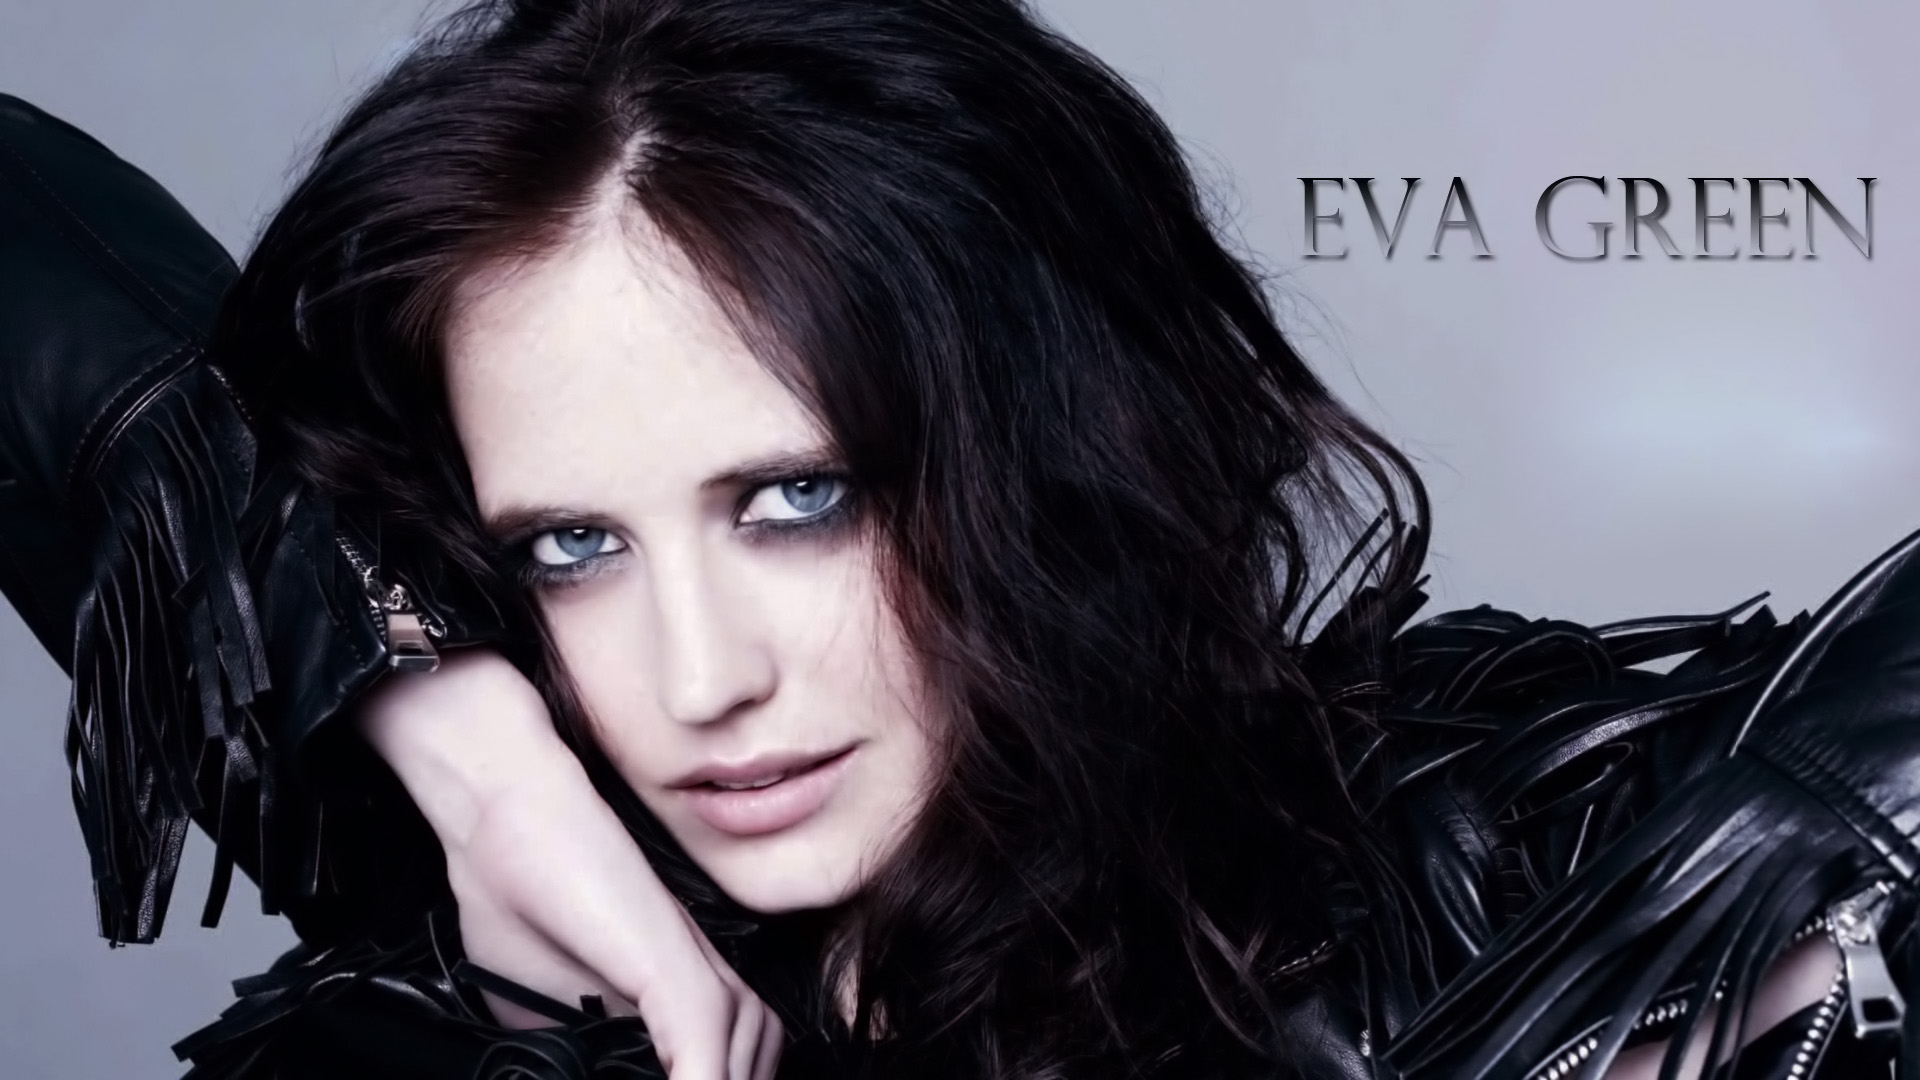 Hogar De Miss Peregrine Eva Green Wallpapers, Eva Green Fondos Hd